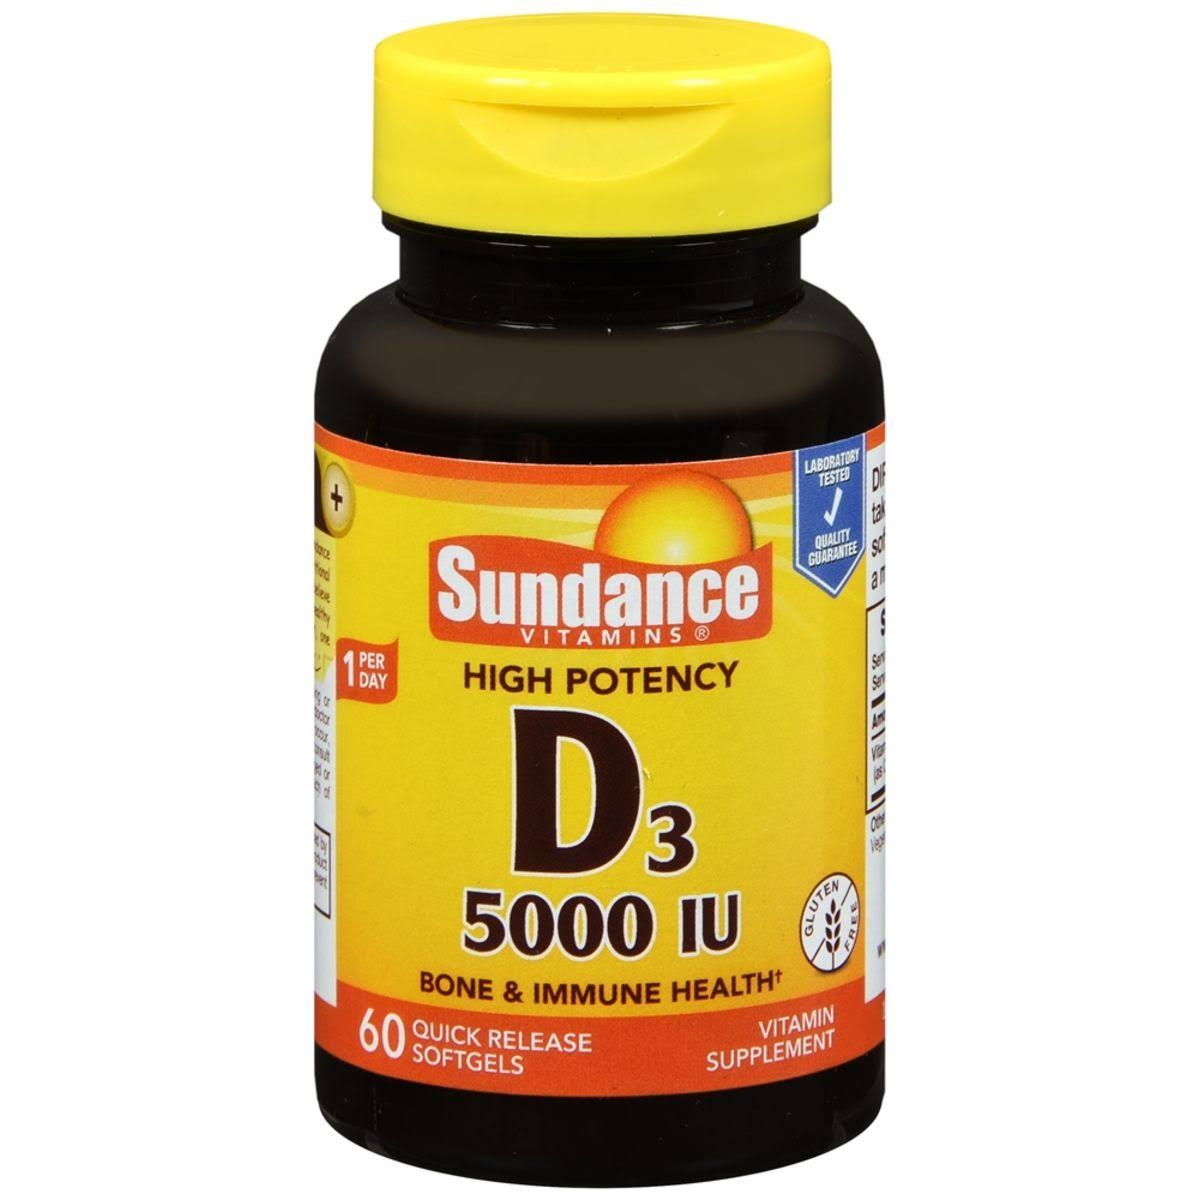 Sundance Vitamins High Potency Vitamin D3 5000 IU - 60ct